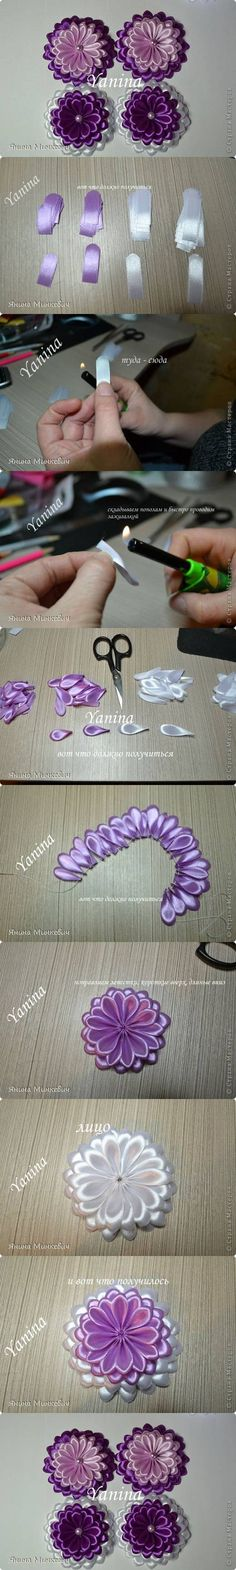 DIY Modular Ribbon Flower DIY Projects | UsefulDIY.com